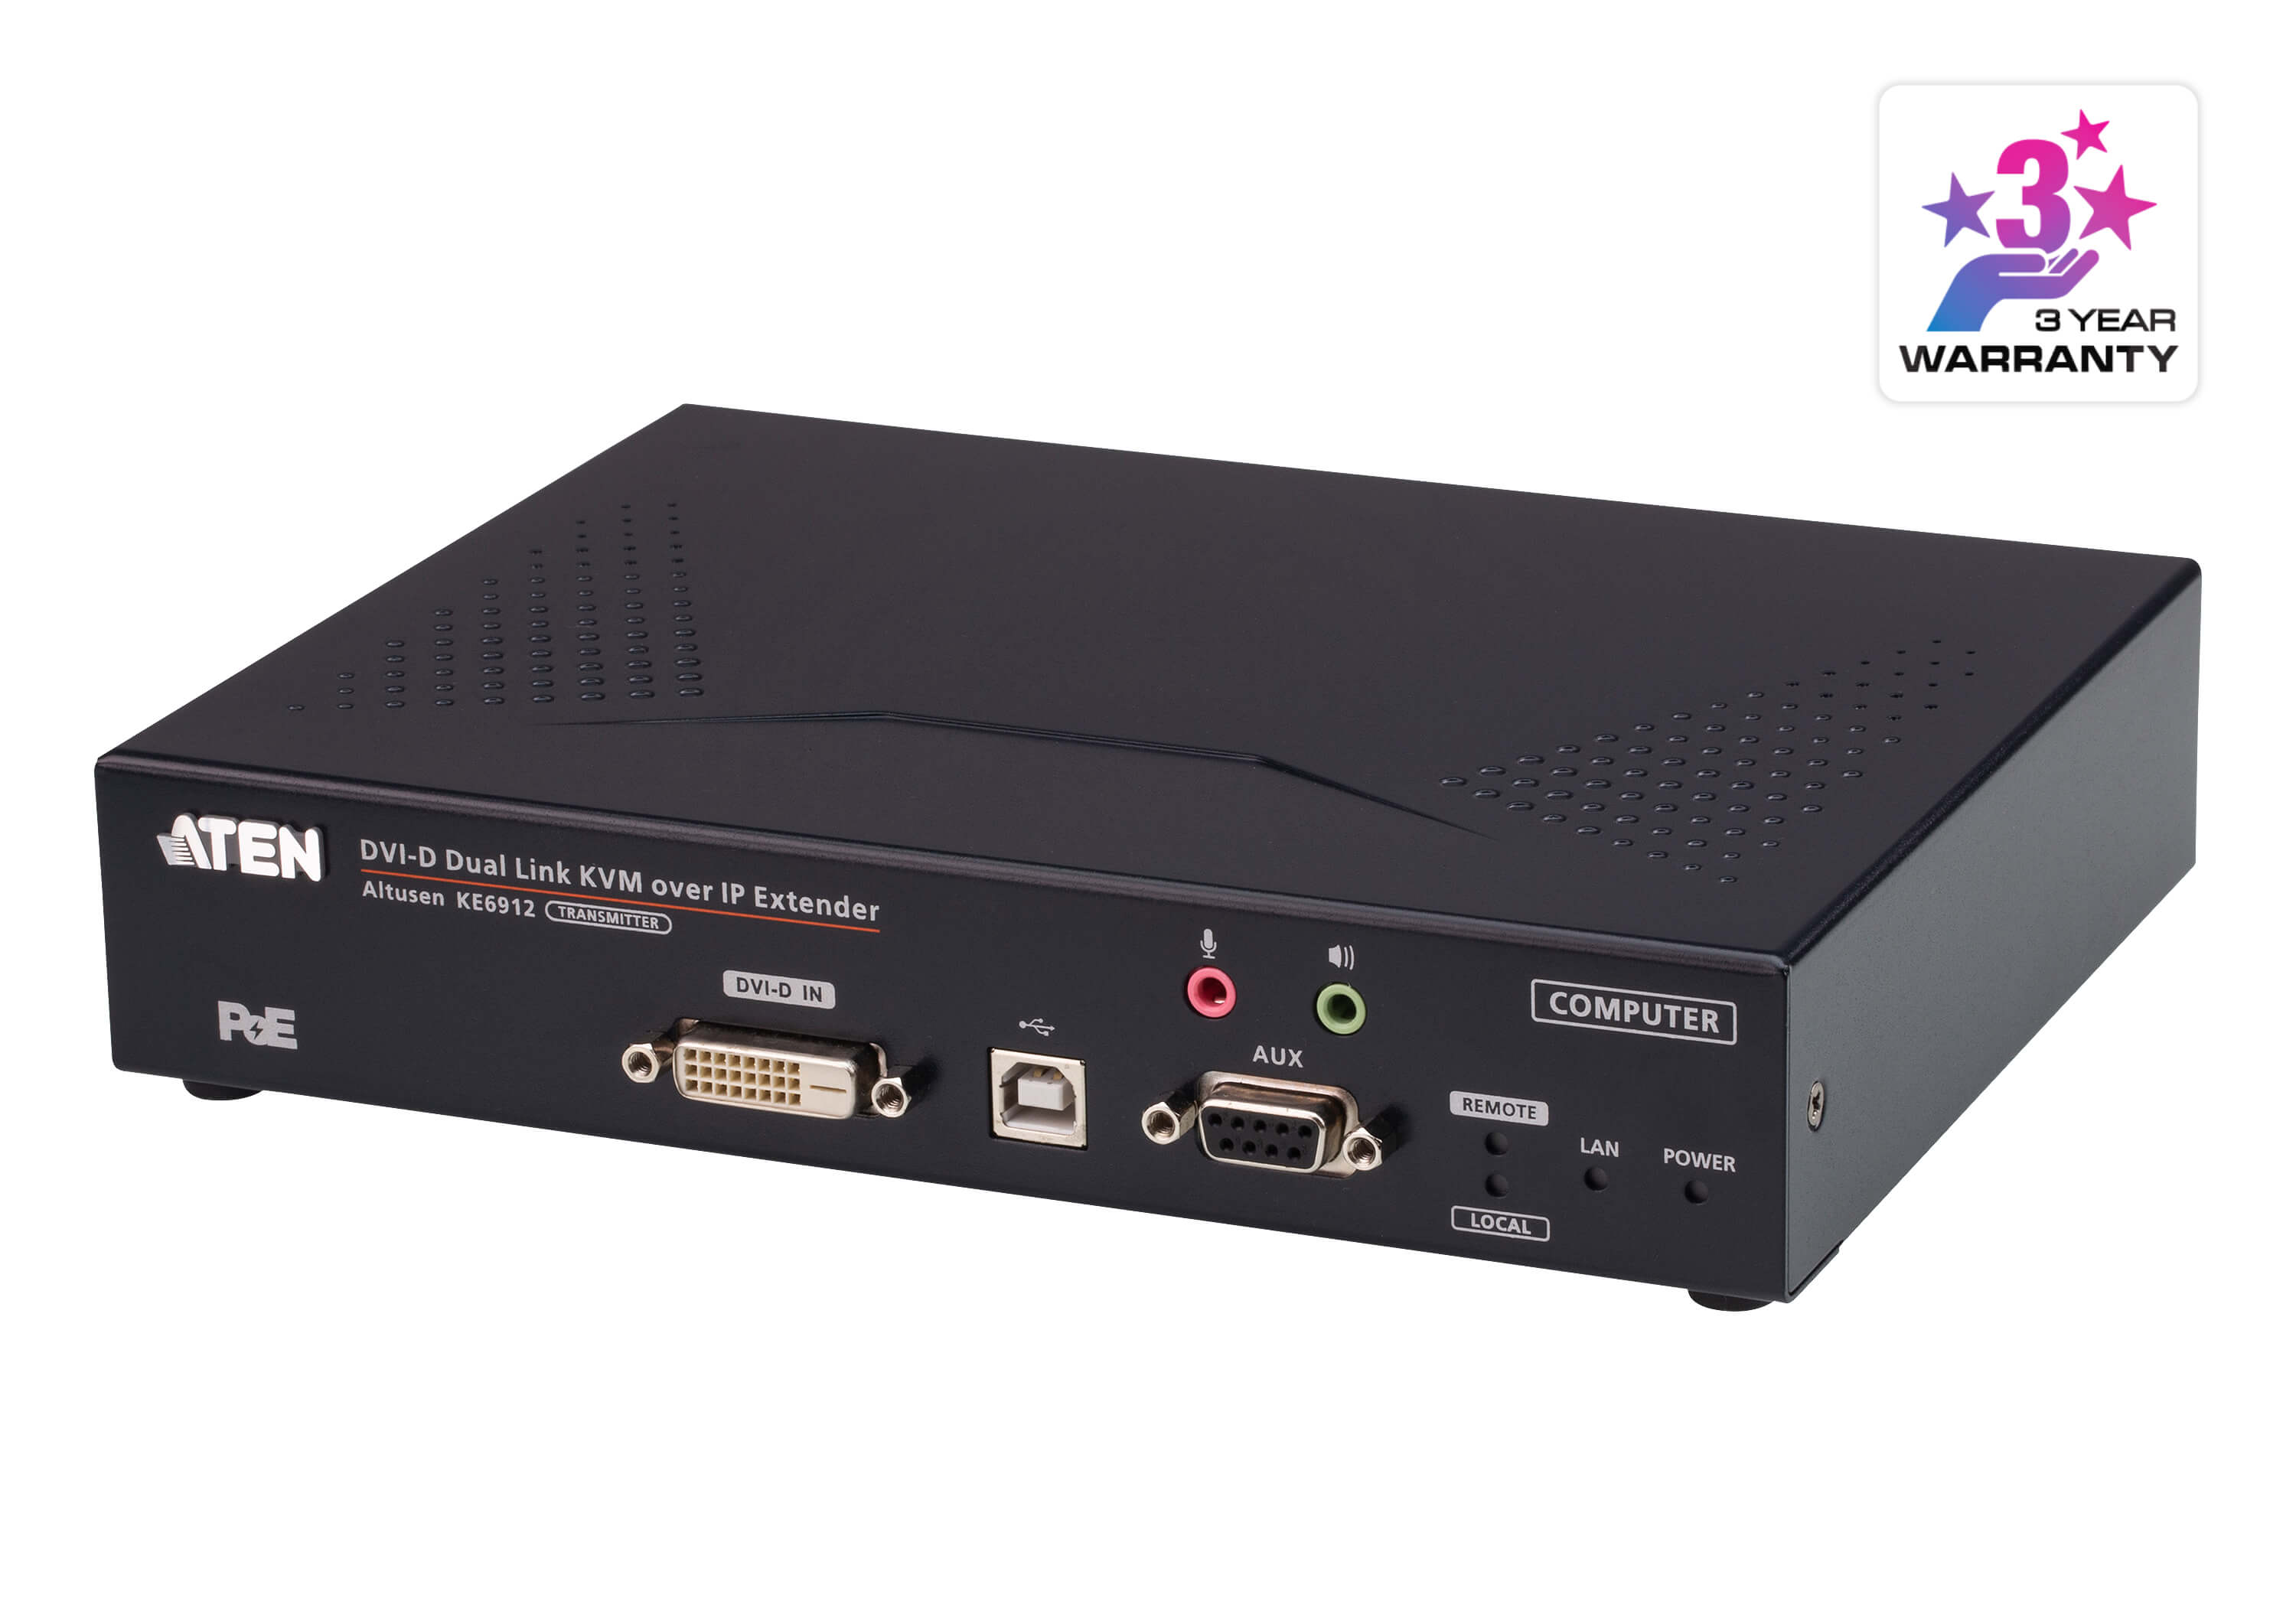 Aten DVI Dual Link KVM over IP Transmitter with DC Power + Power over Ethernet support, supports up to 2560 x 1600 @ 60 Hz, USB and 3.5mm Audio